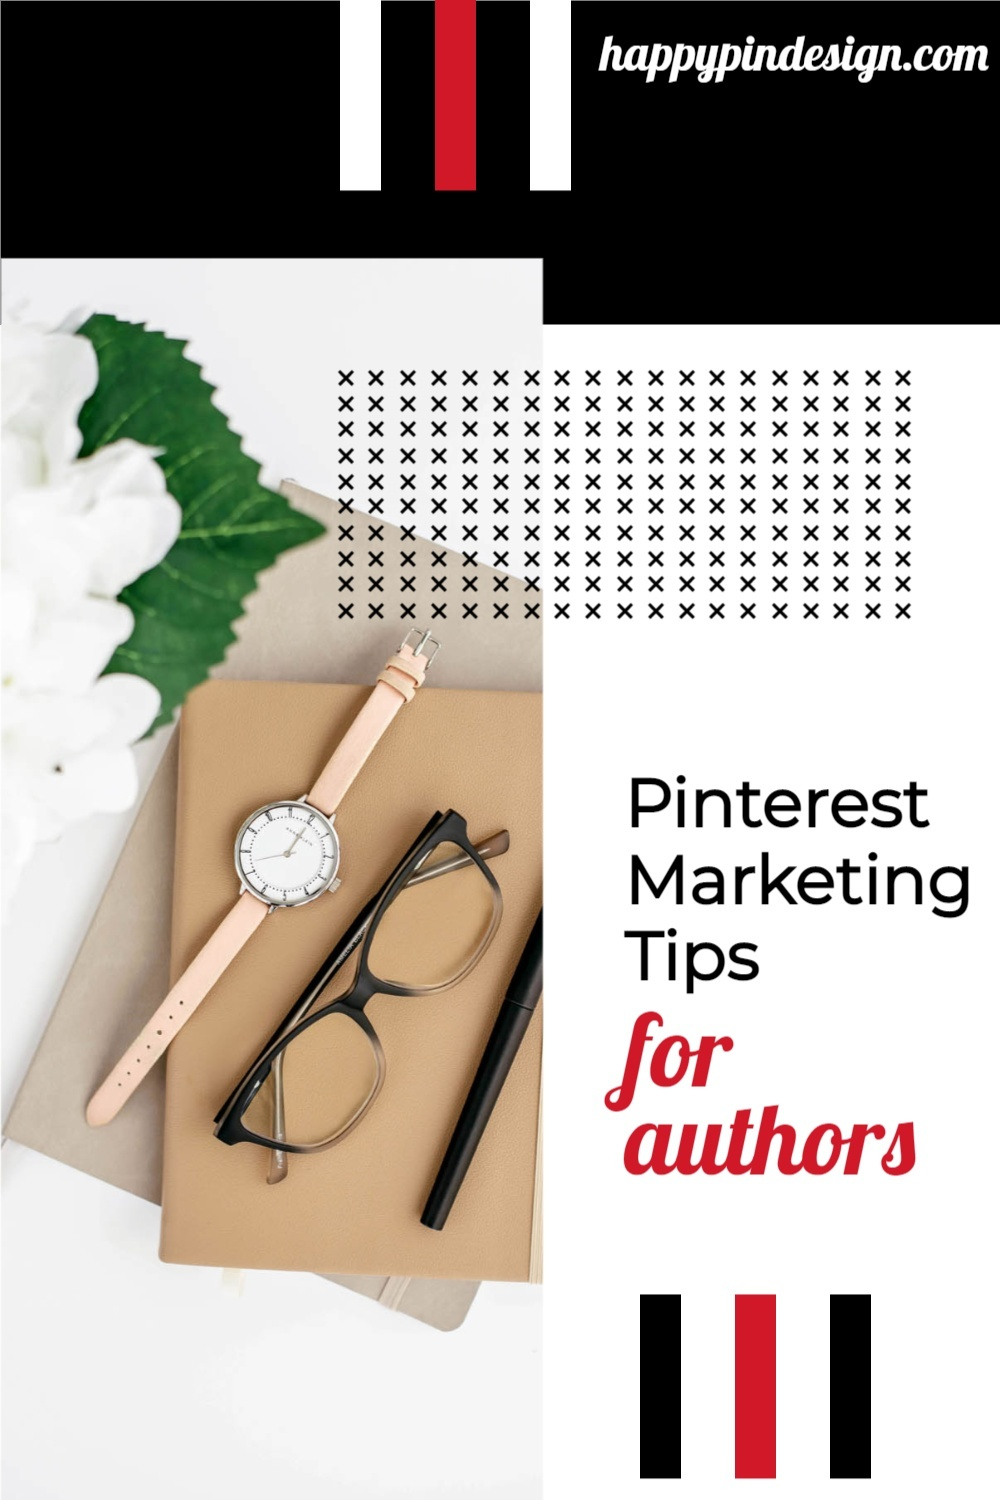 Marketing Pinterest Pin image created by Michelle Buck - Happy Pin Design using a Tailwind Create design template in 2021.